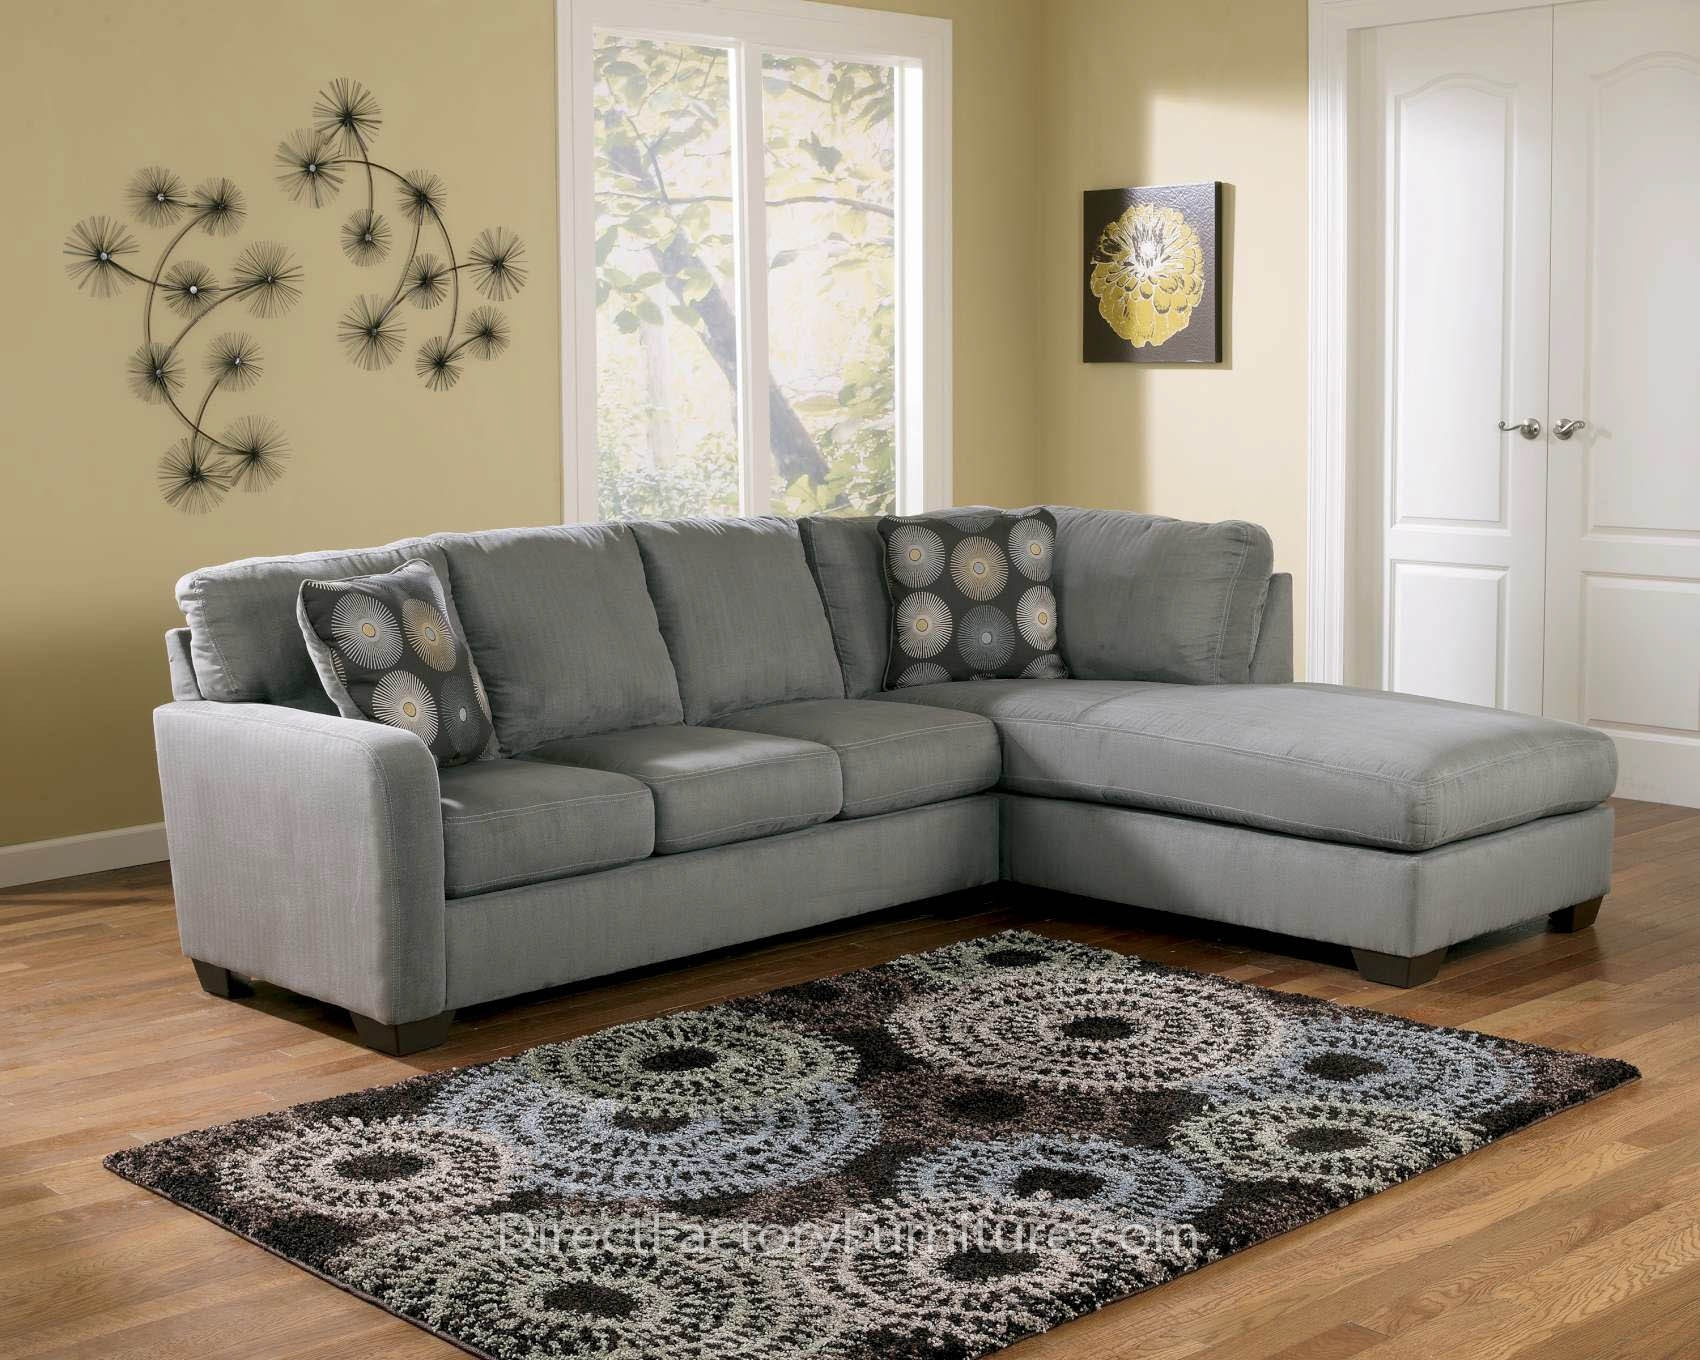 Sofas Center Grey Sofa Decor Ideas Leather Decorating Dark Within Charcoal Grey Sofa (Image 14 of 15)